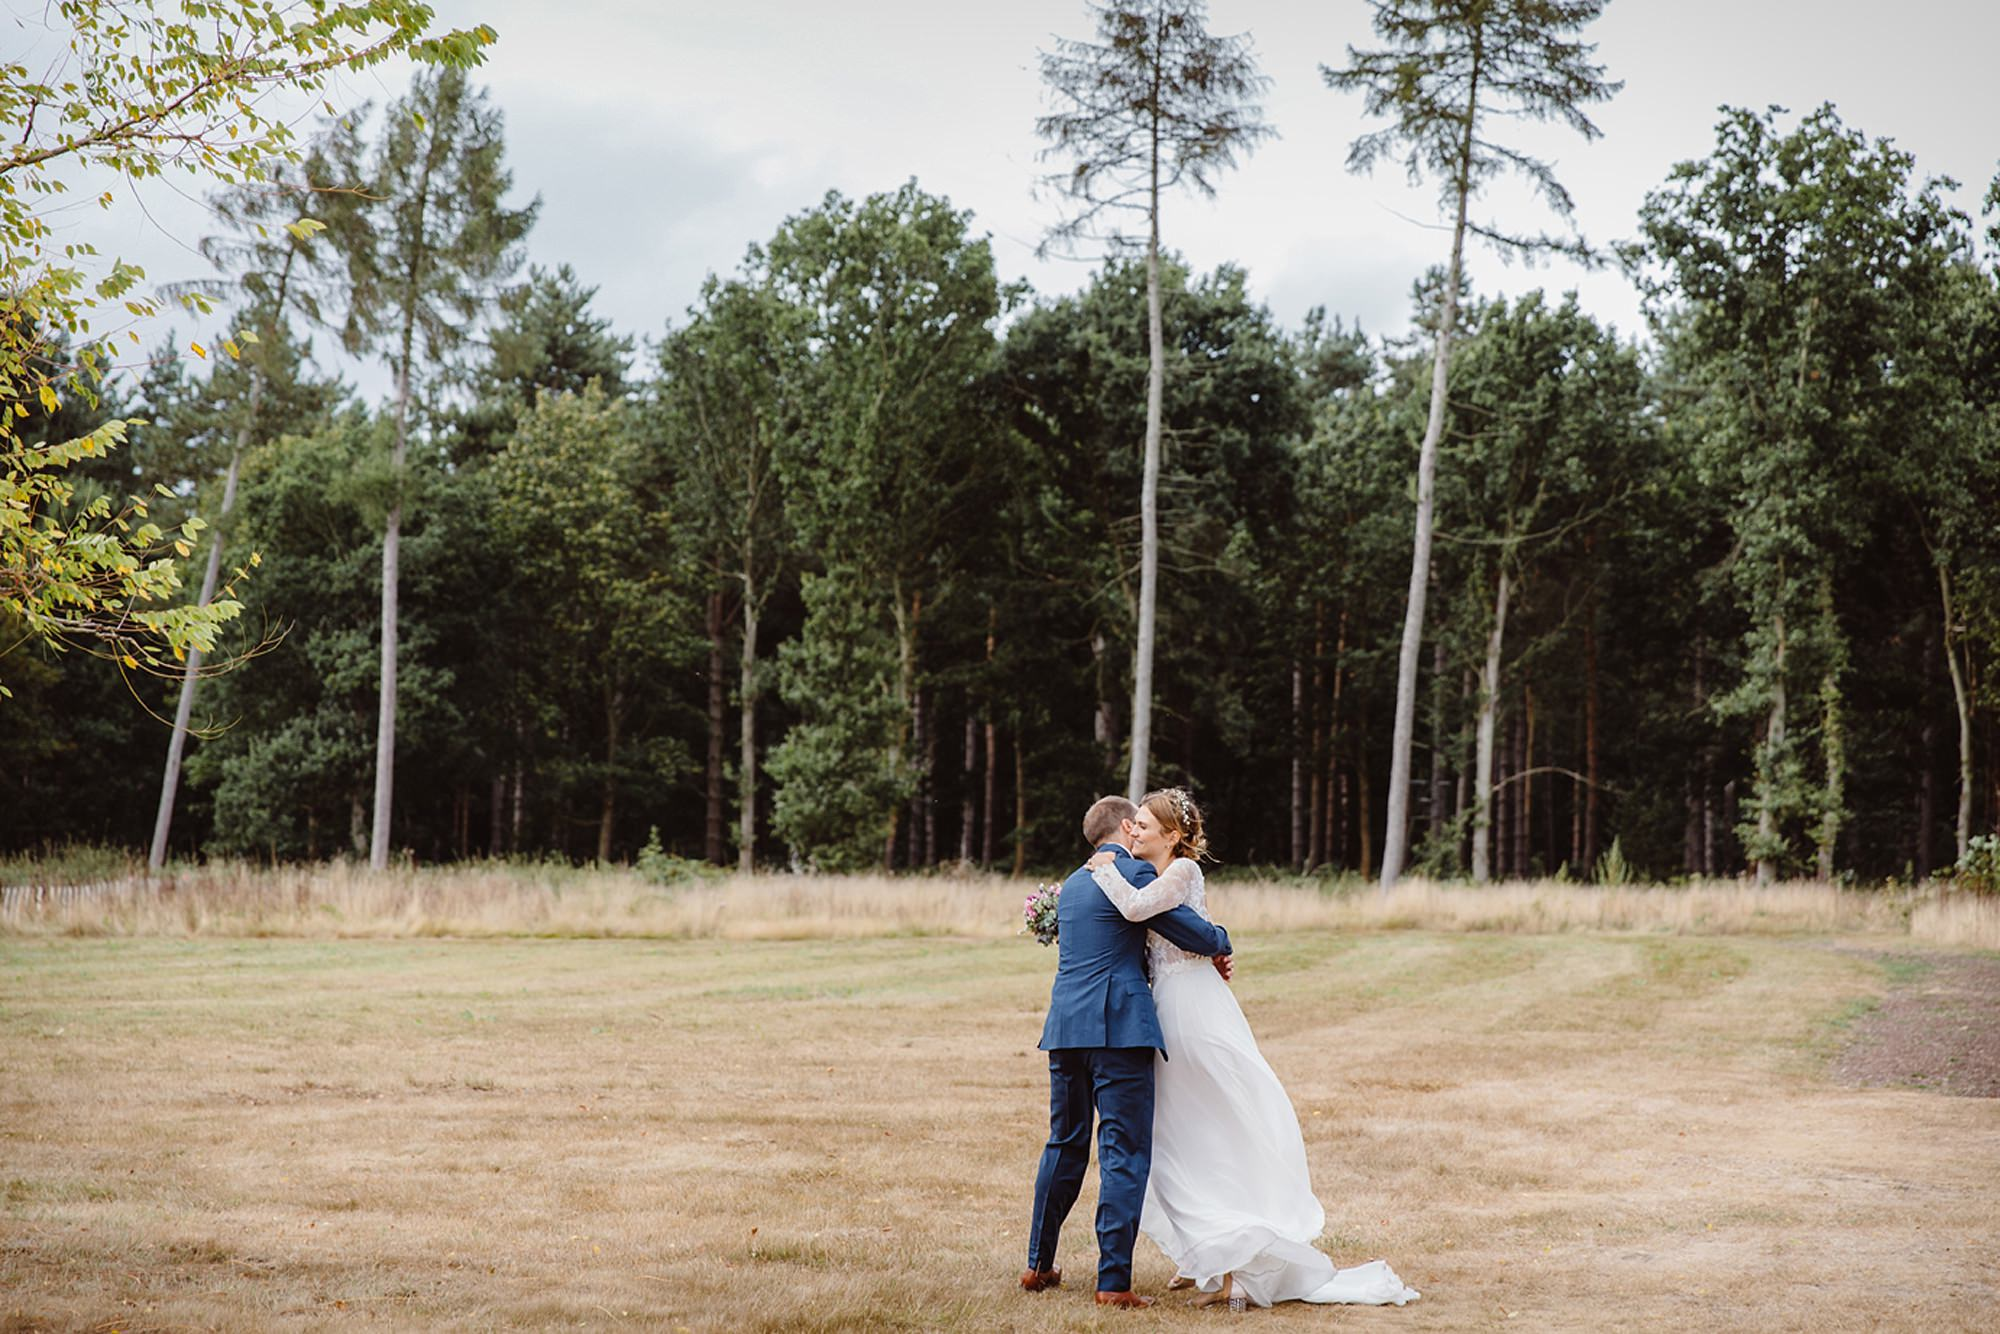 Marks Hall Estate wedding photography bride and groom hugging in field at marks hall estate